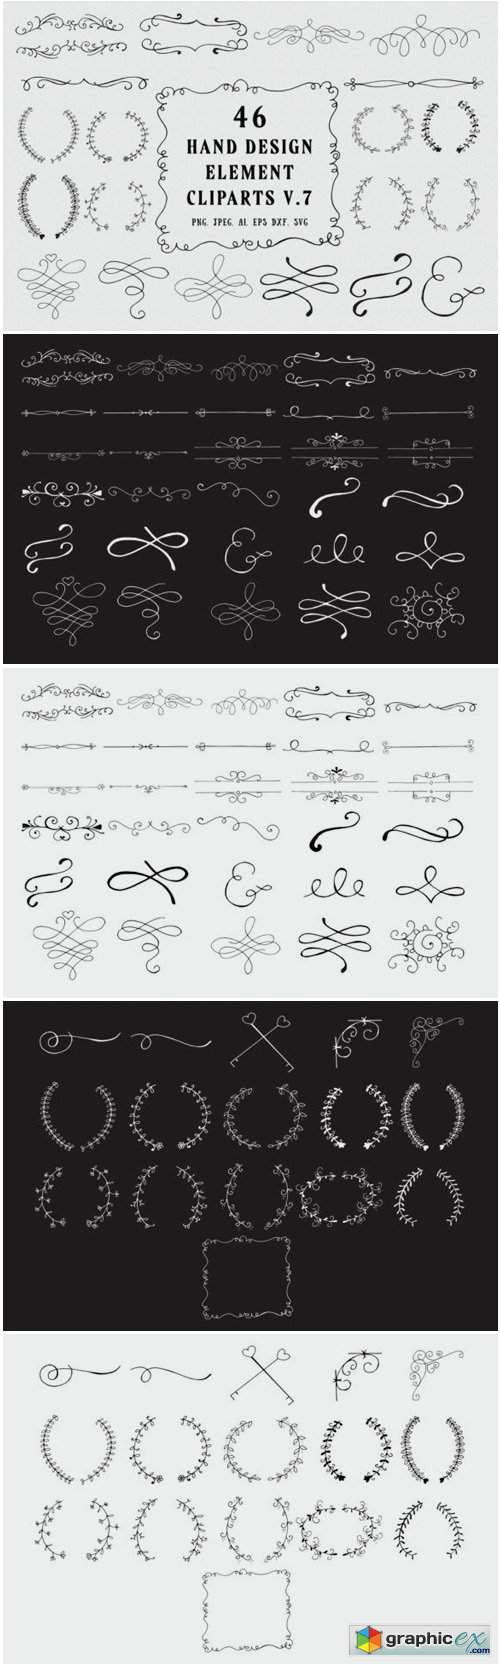 45+ Hand Design Element Clipart Ver. 7